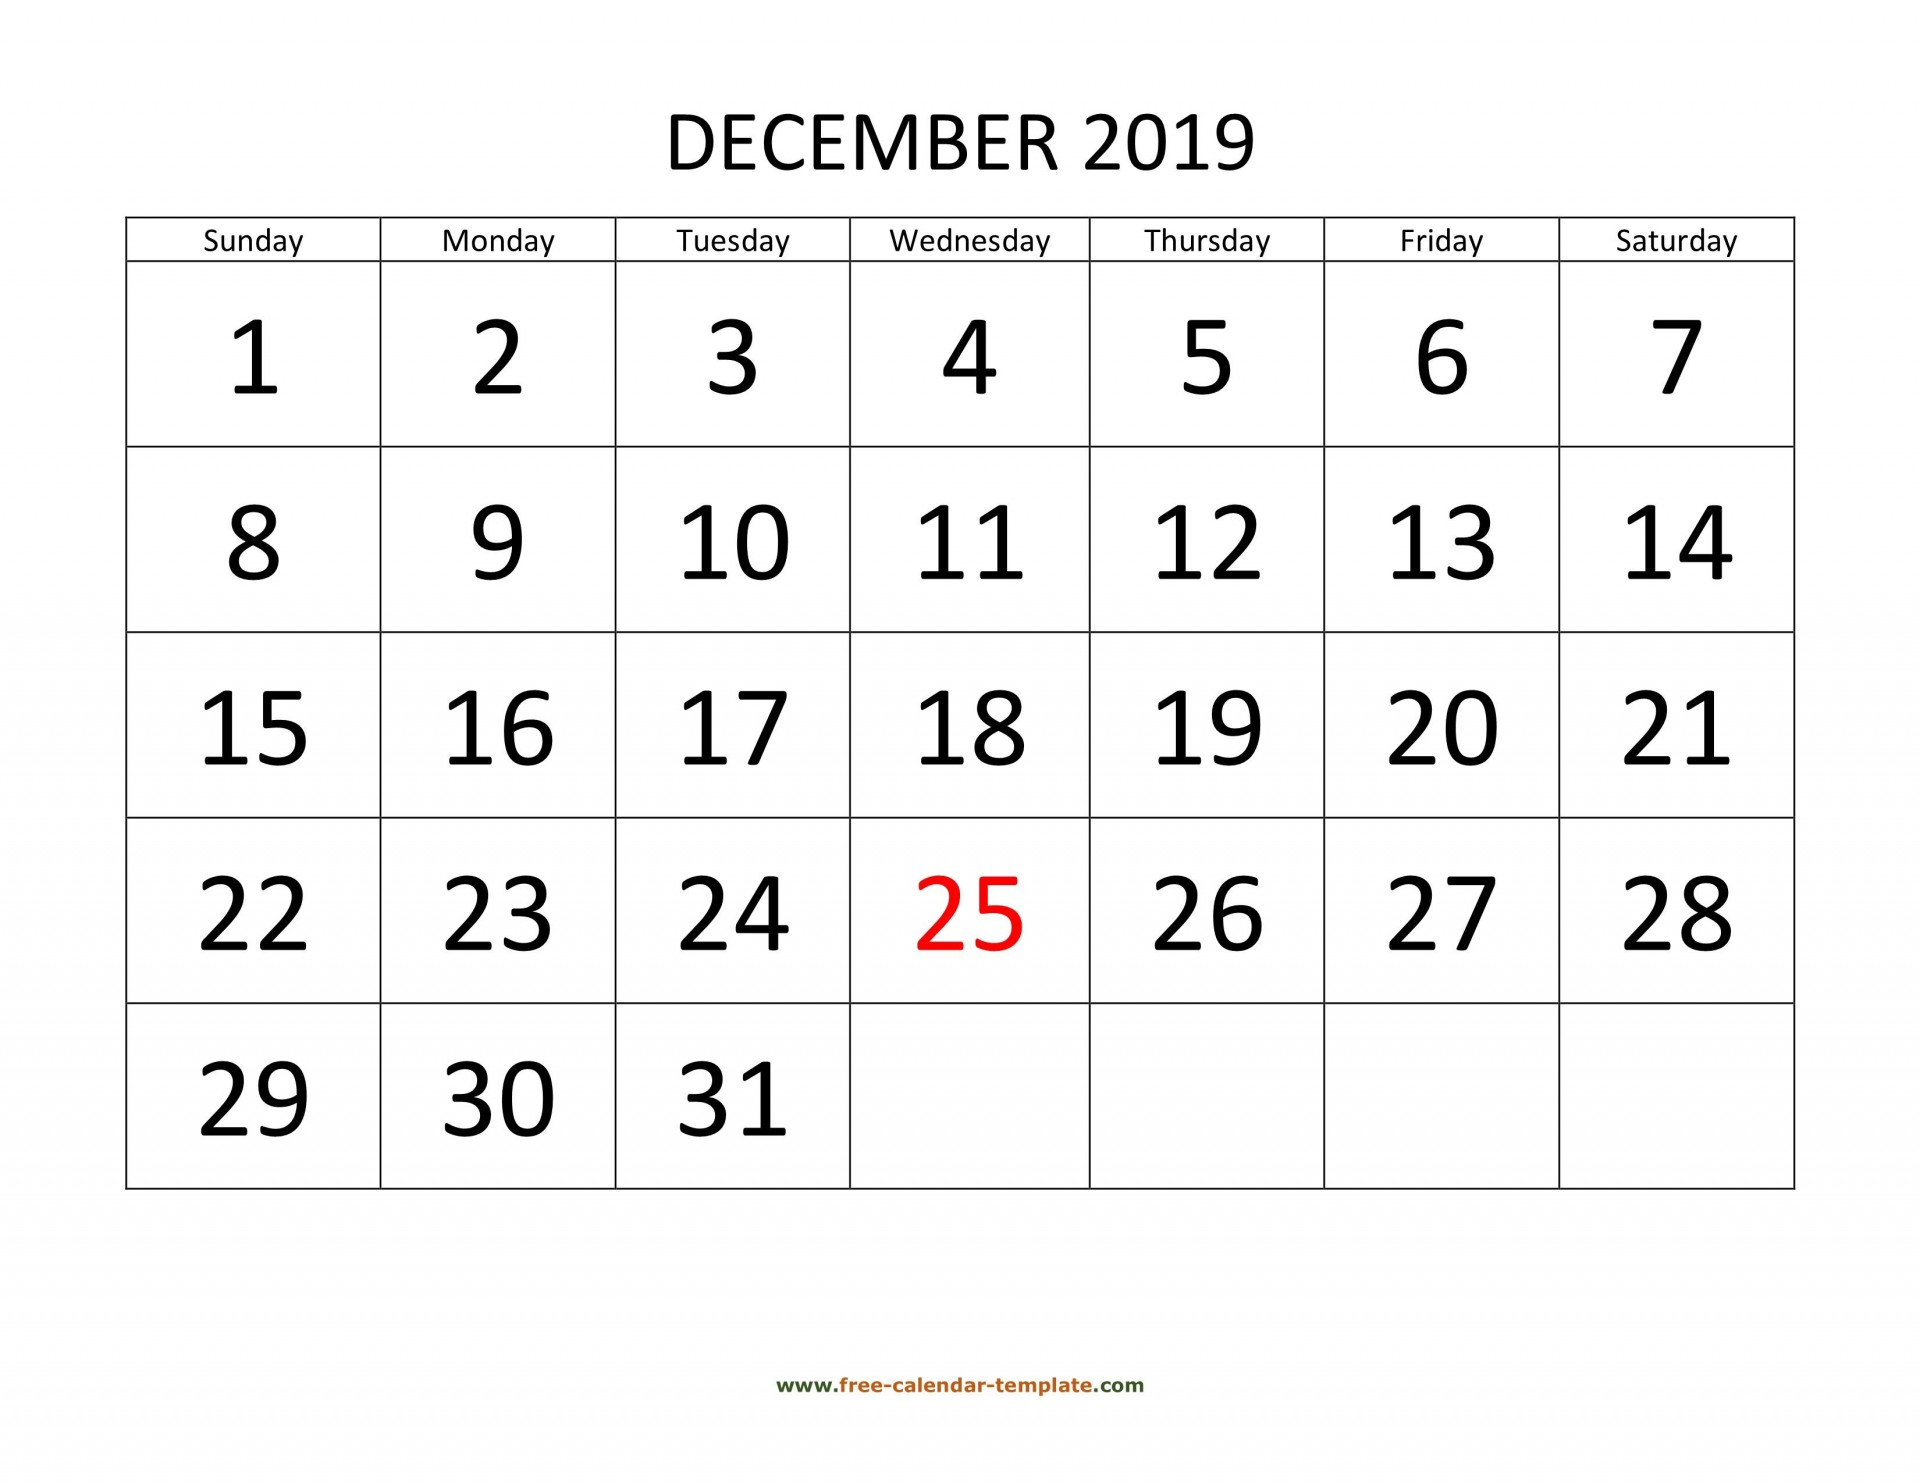 006 Impressive Calendar Template Free Download Highest Quality  2020 Powerpoint Table Design 2019 Malaysia1920